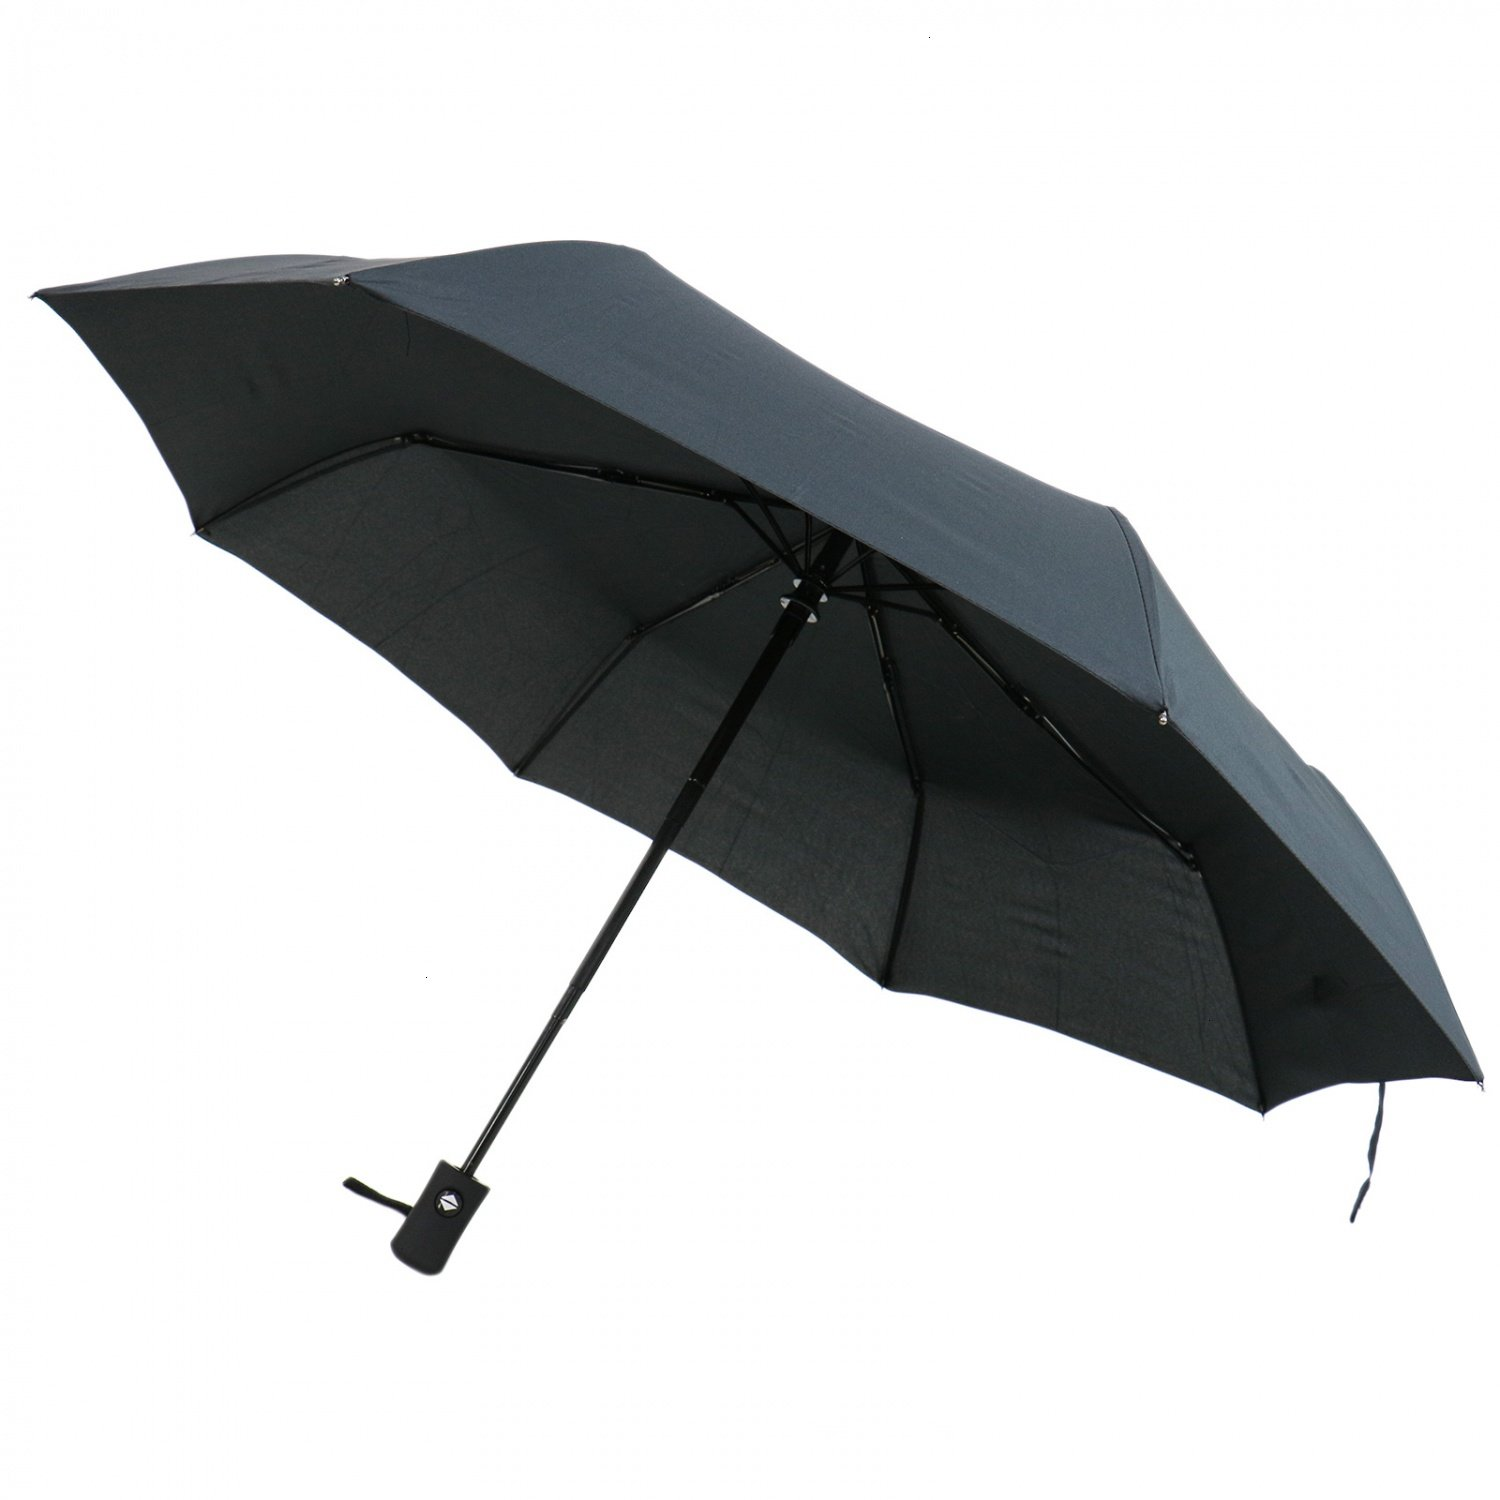 HUELE Travel Automatic Compact Travel Umbrella Windproof Auto Open/Close Folding Strong Windproof Umbrella (Black)